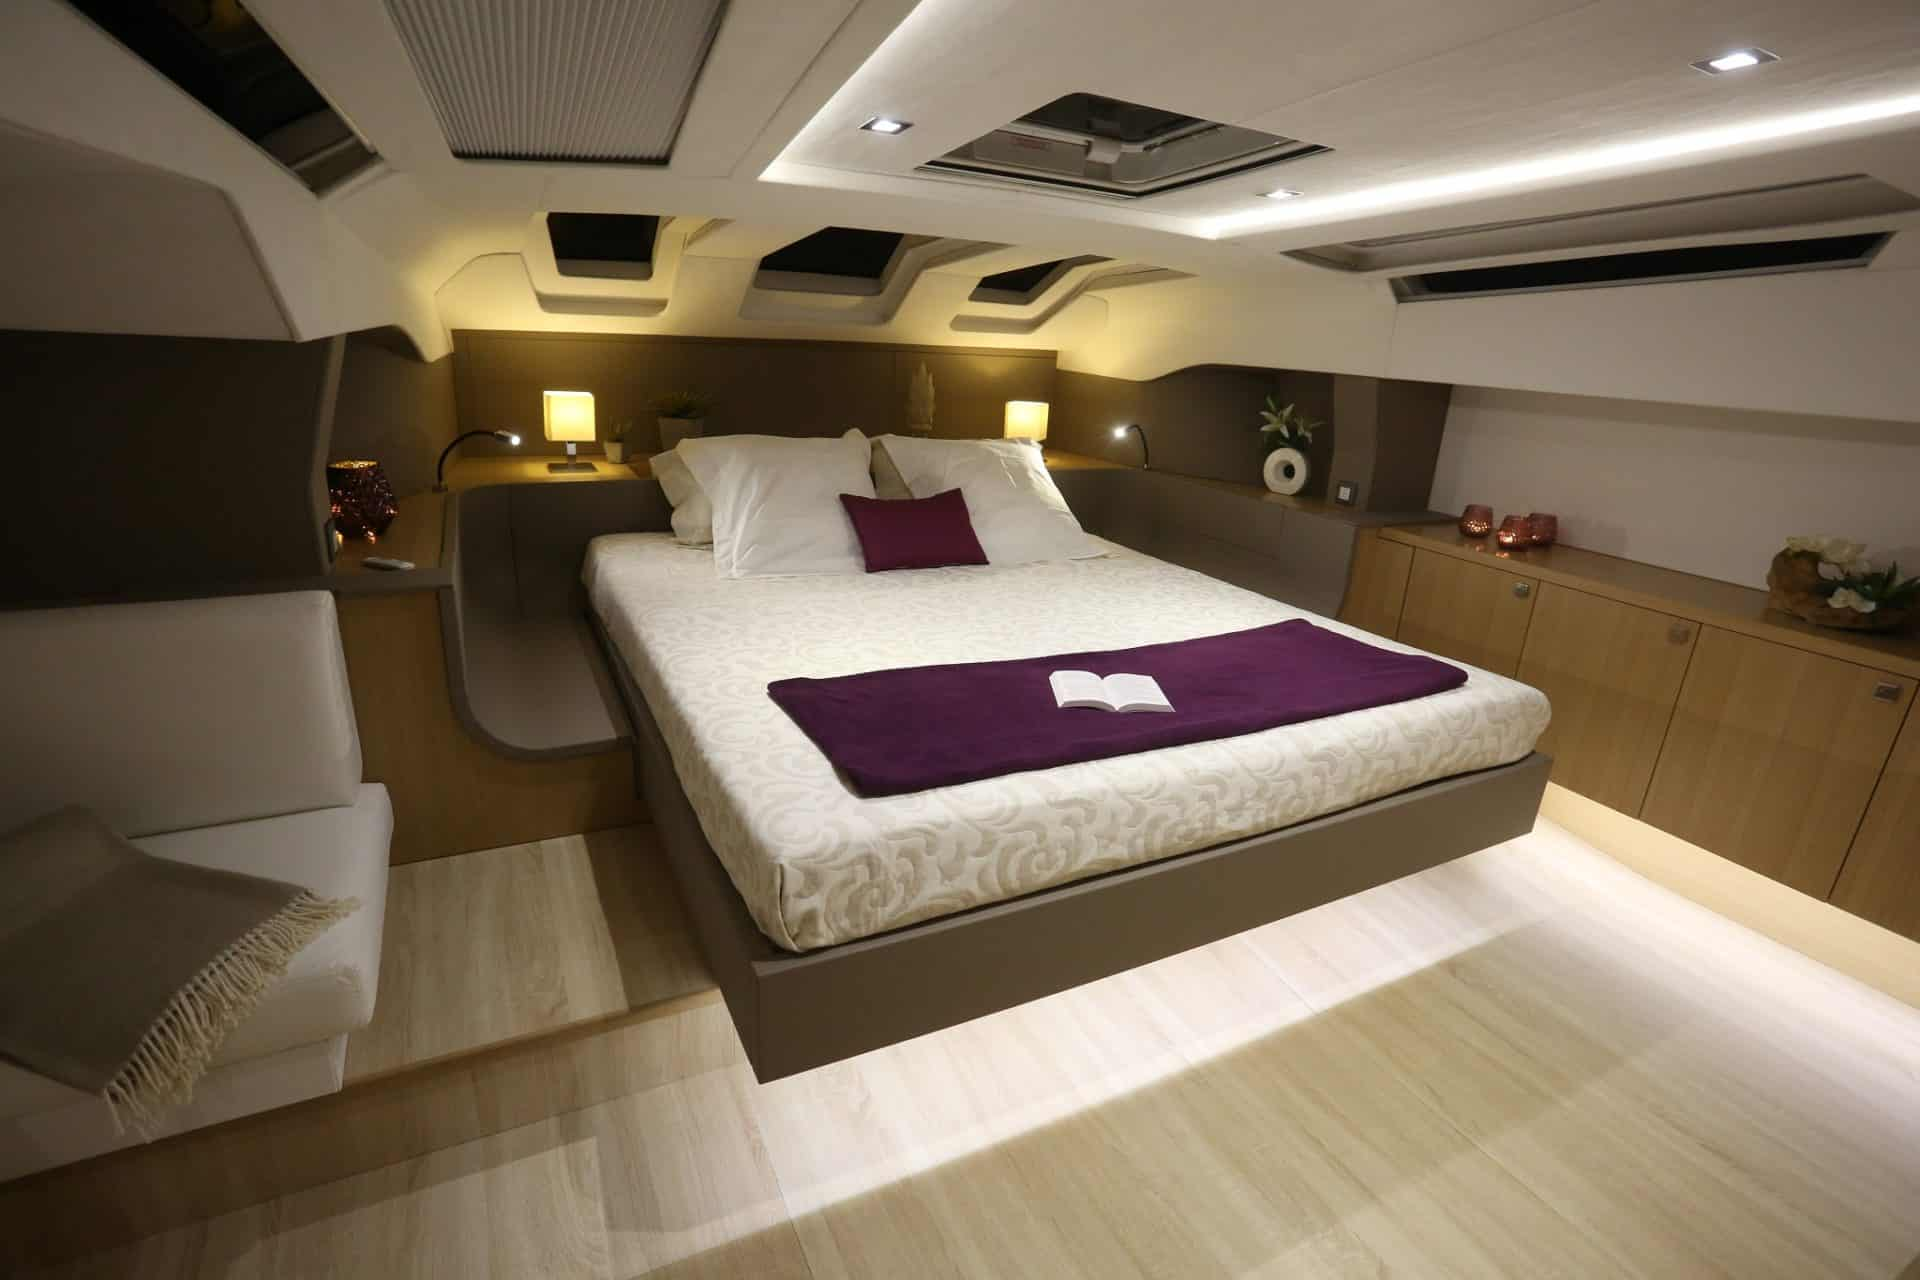 Privilege 7 Series - Owner's cabin by night